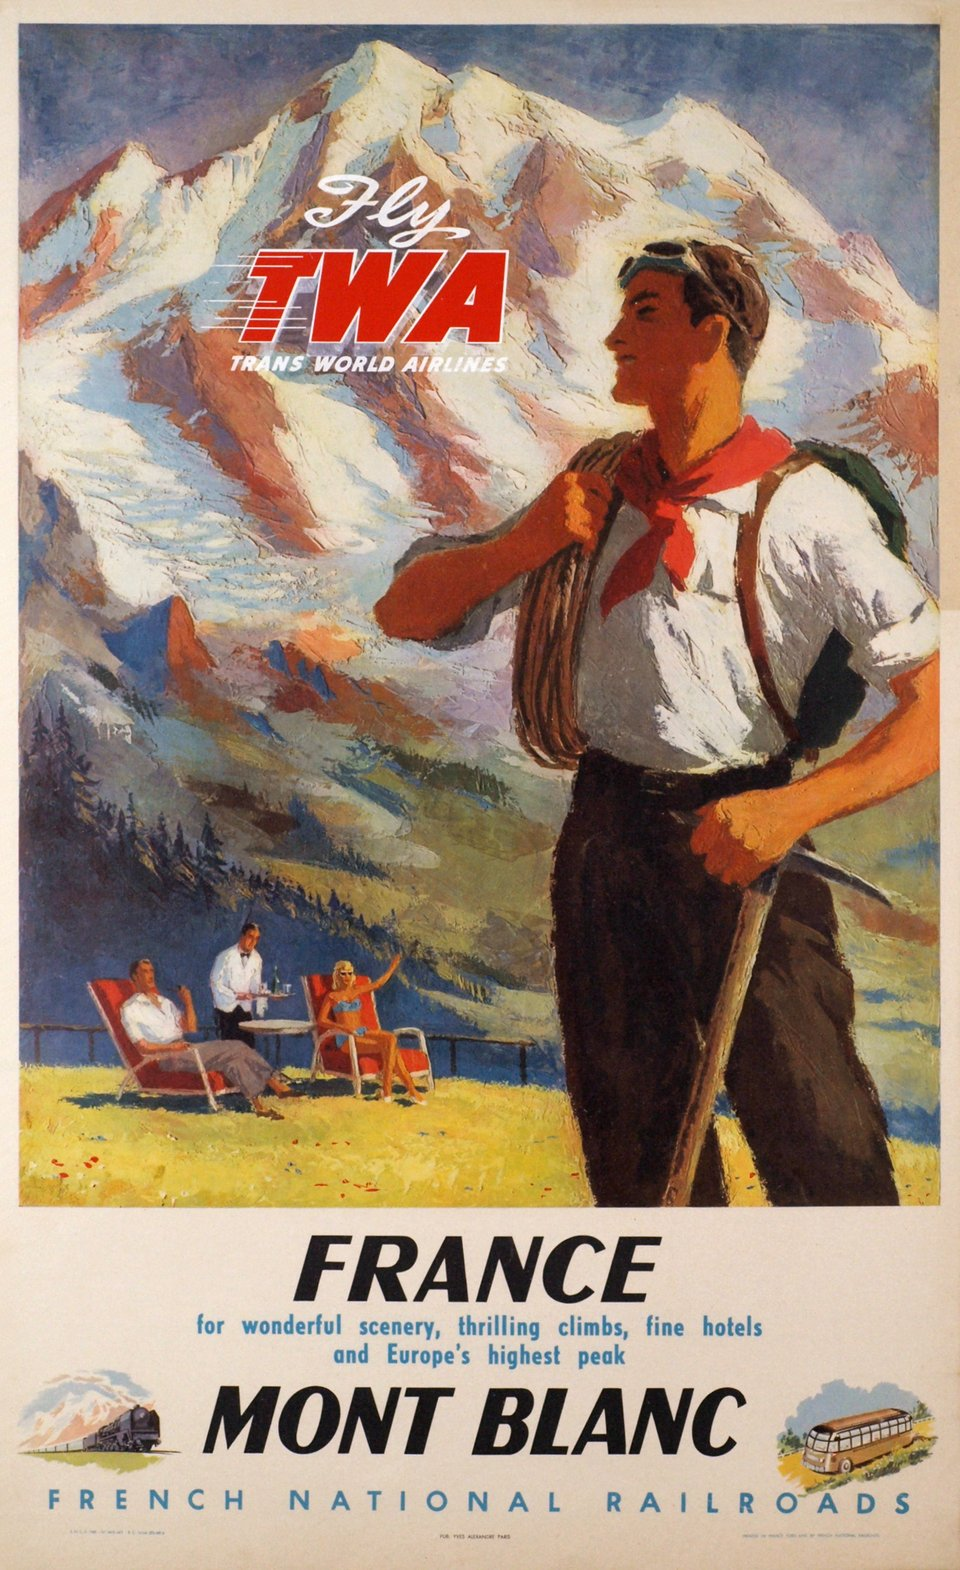 Mont-Blanc, TWA, Fly TWA, France – Vintage poster – Yves ALEXANDRE – 1948